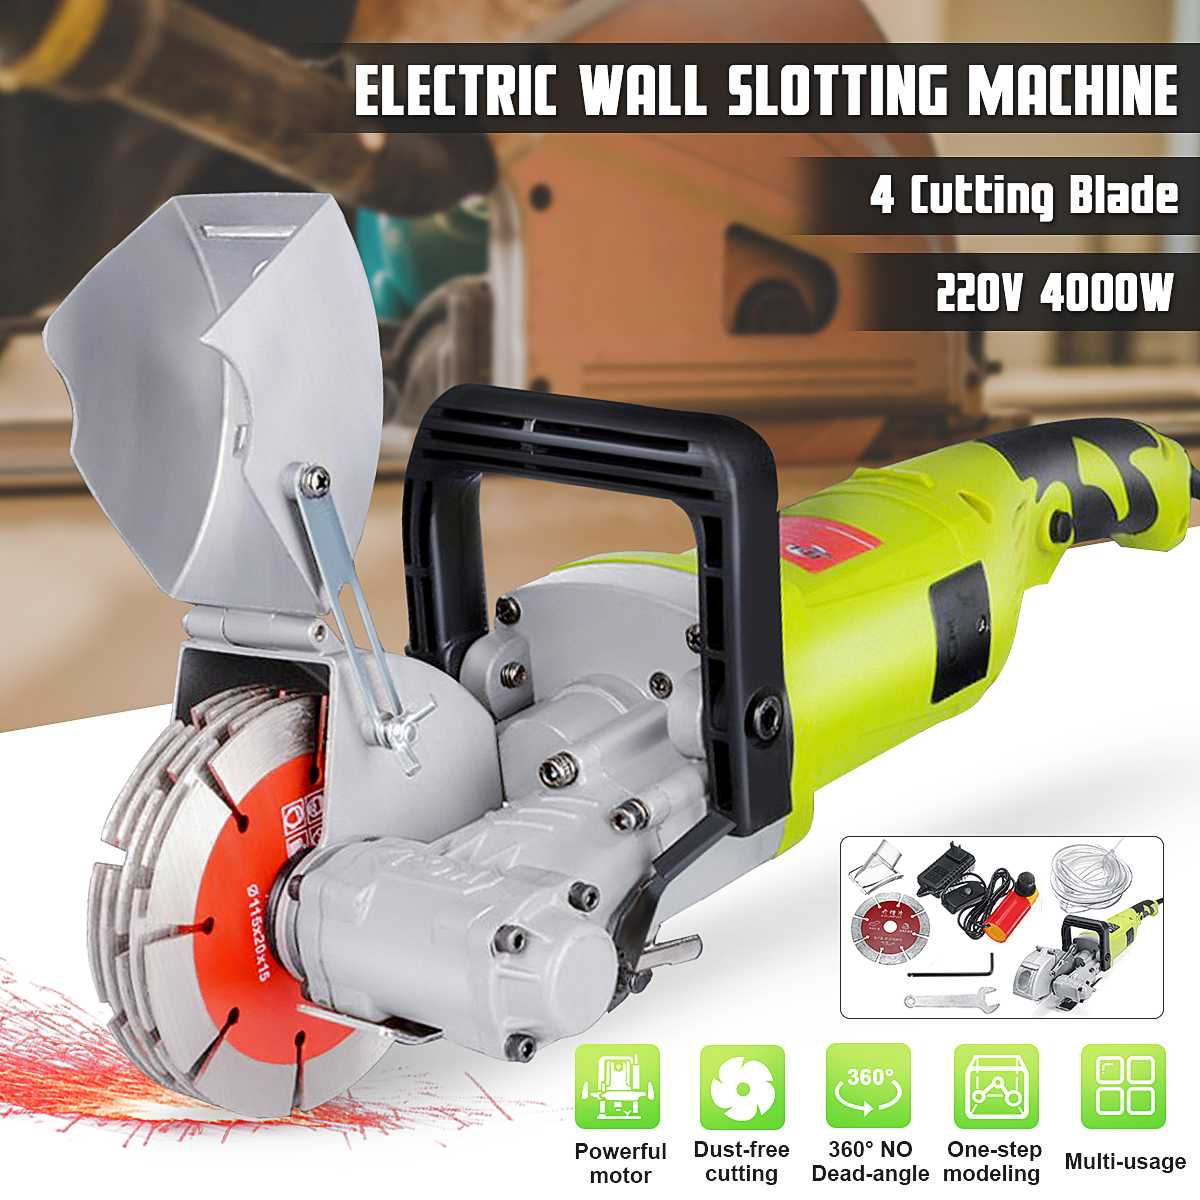 4000W 220V Electric Wall Slotting Machine 7500r//min for Chaser Grooving Cutting